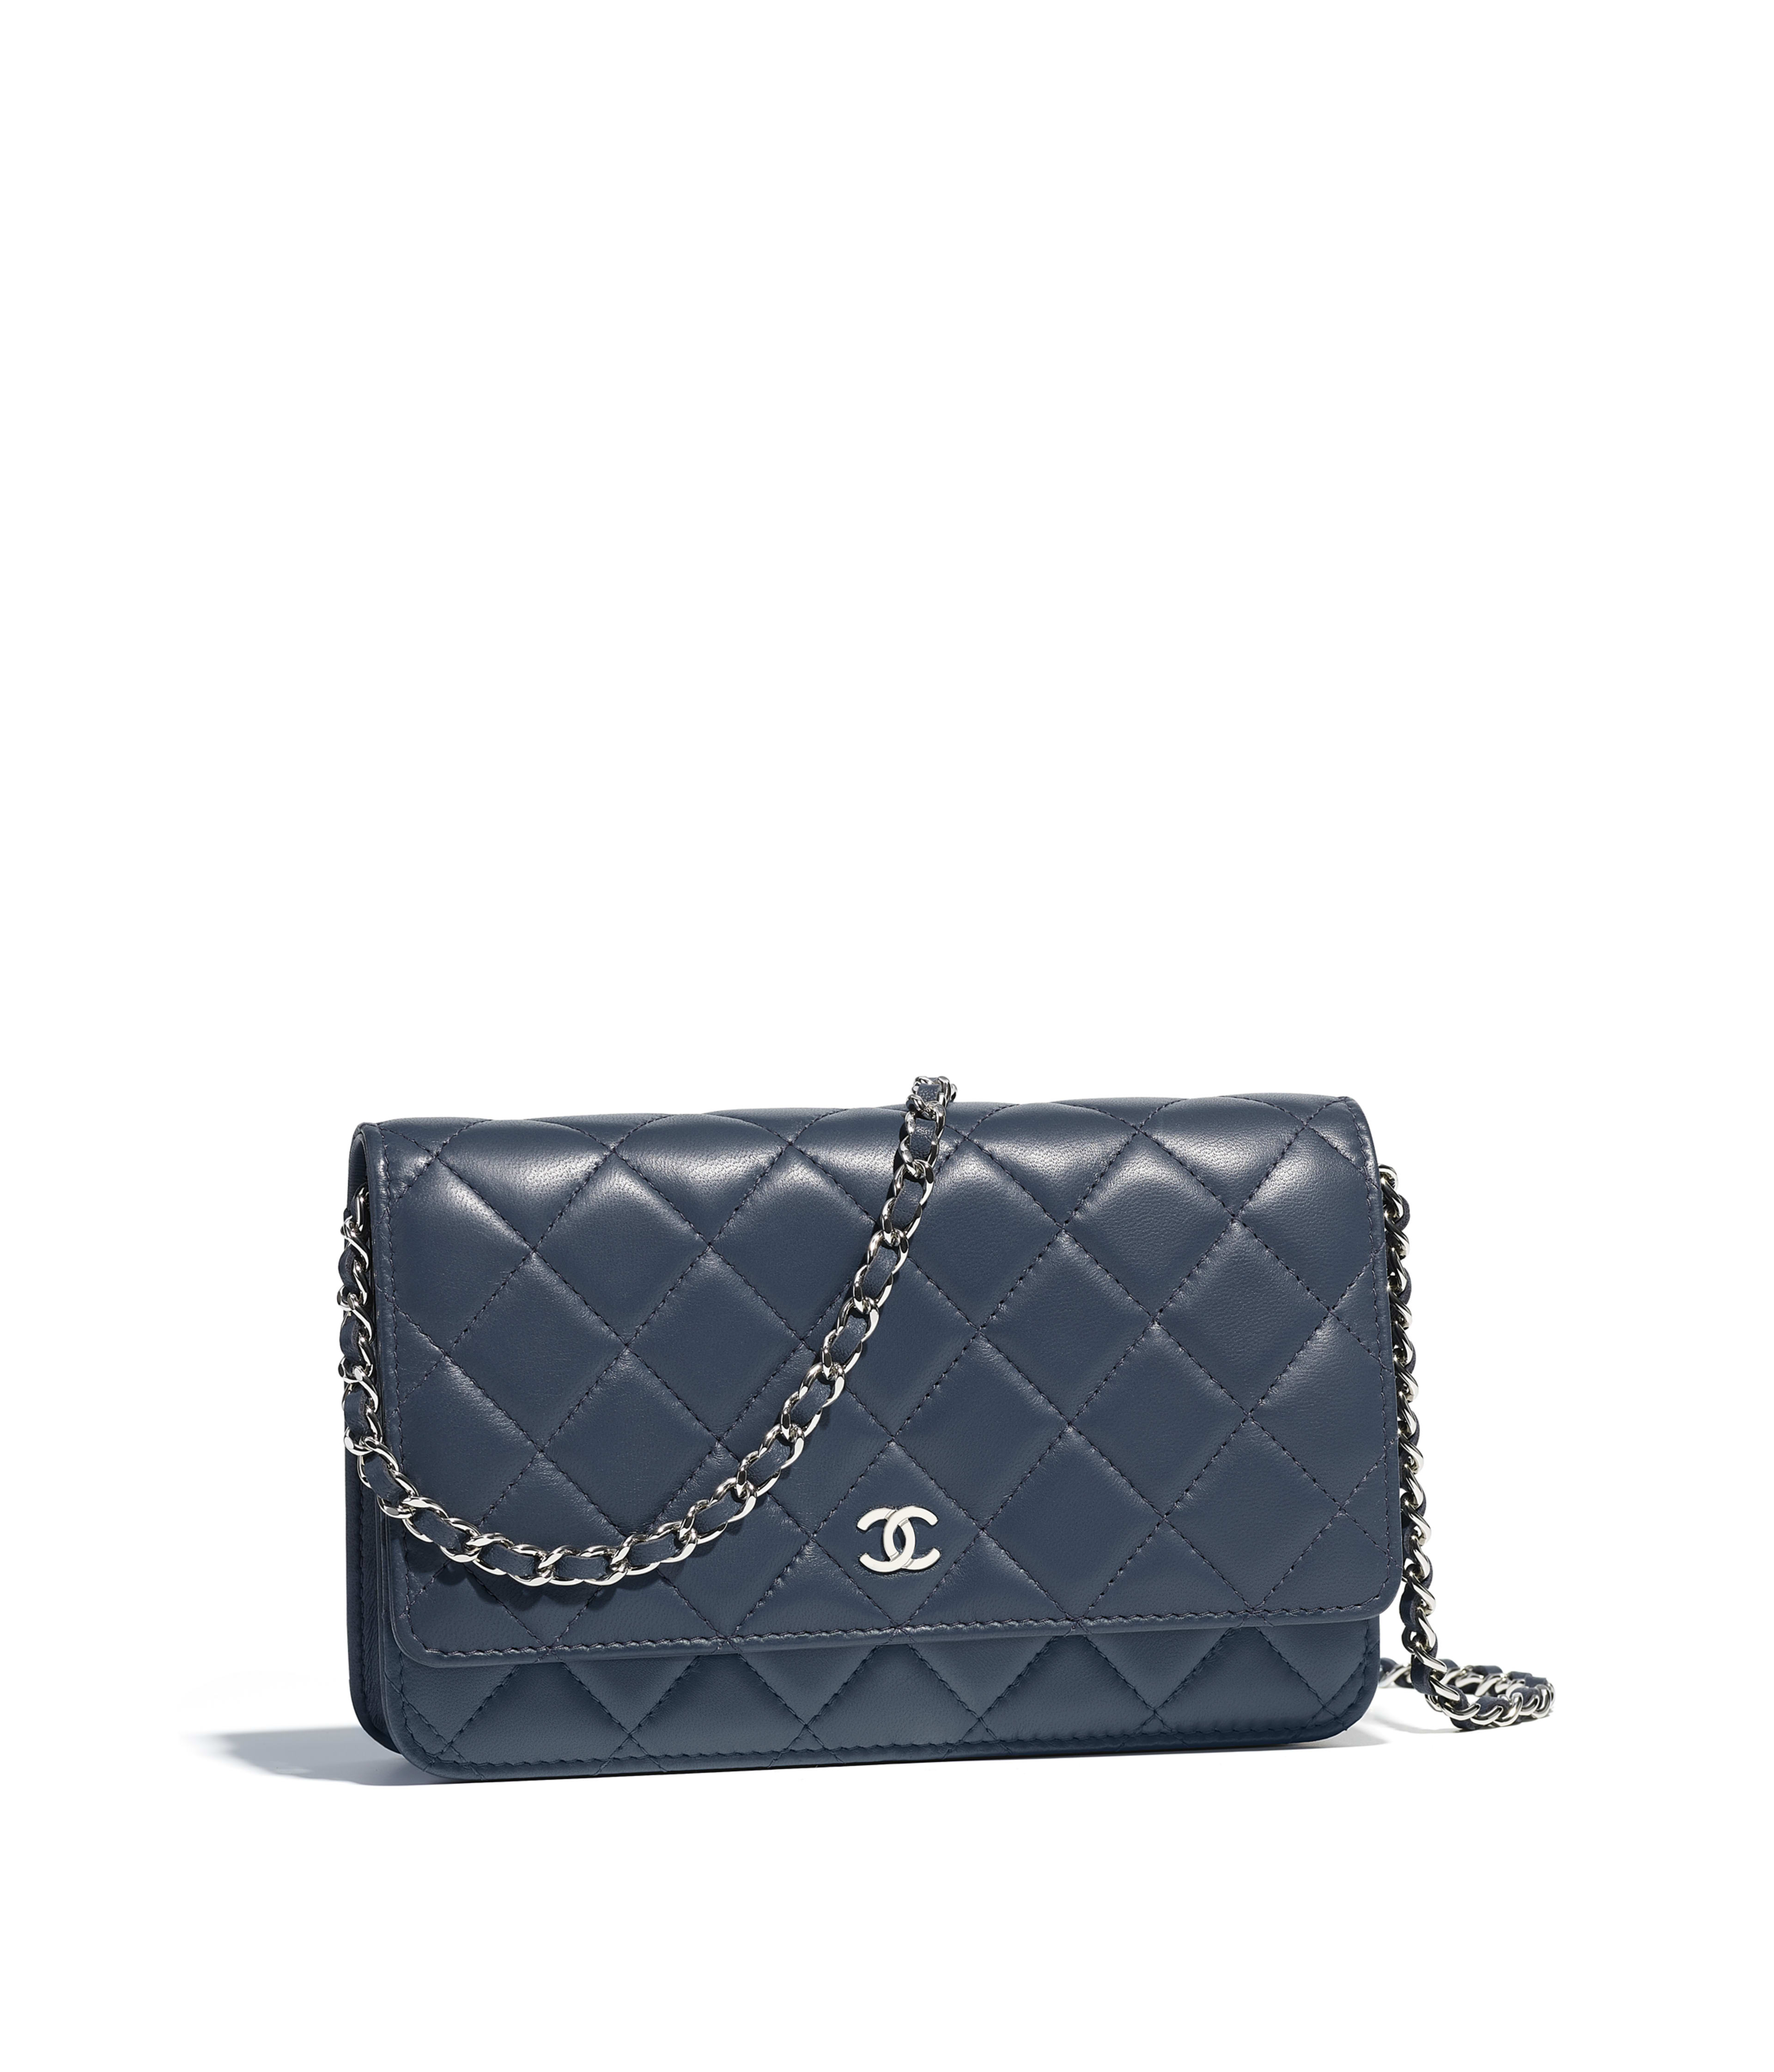 6fbe86b21acb Chanel Classic Wallet On Chain Grained Lambskin | Stanford Center ...